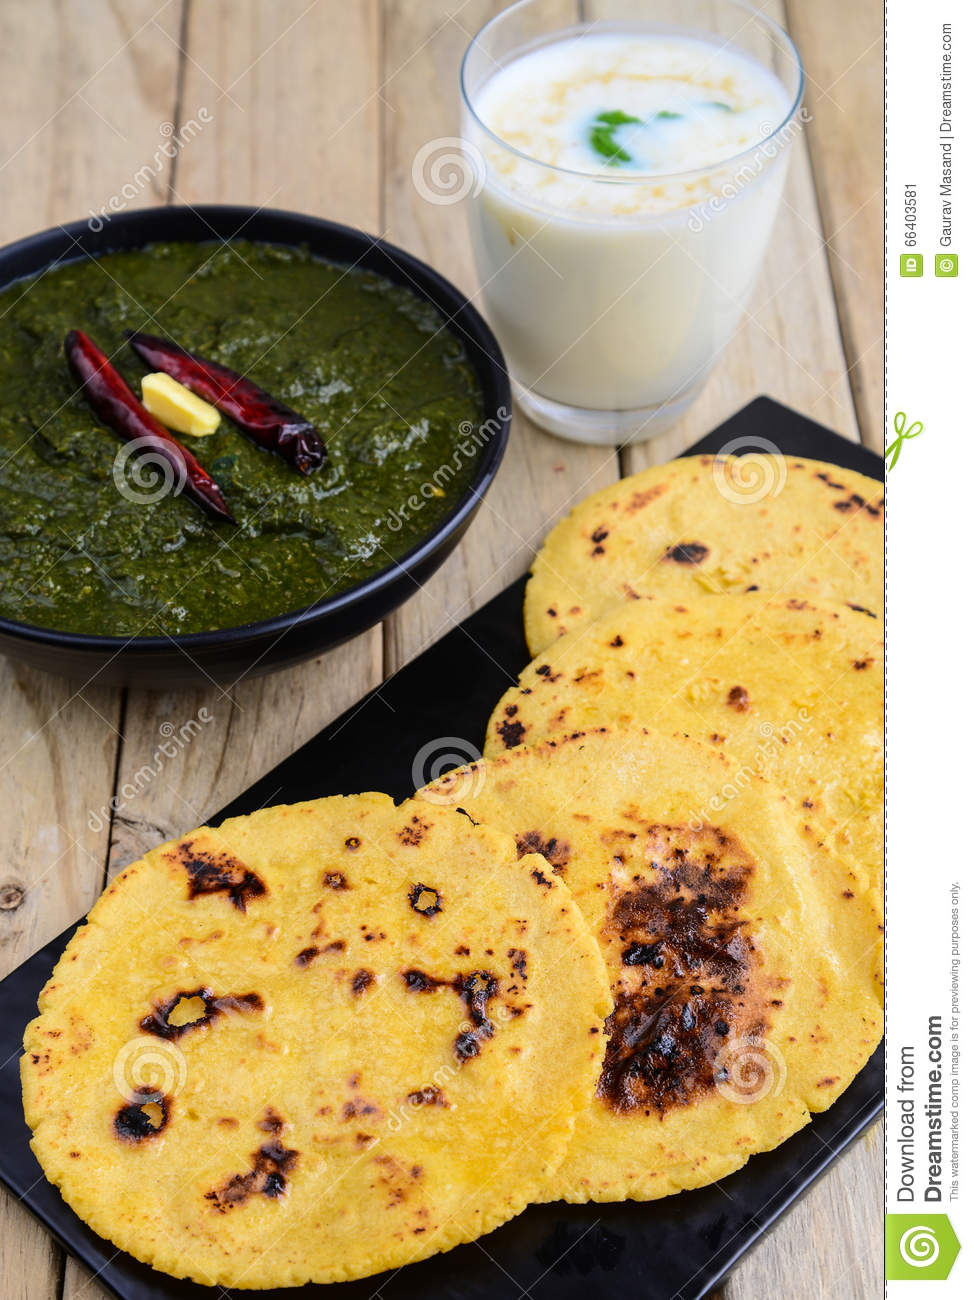 punjabi meal sarso saag greens served with indian maize